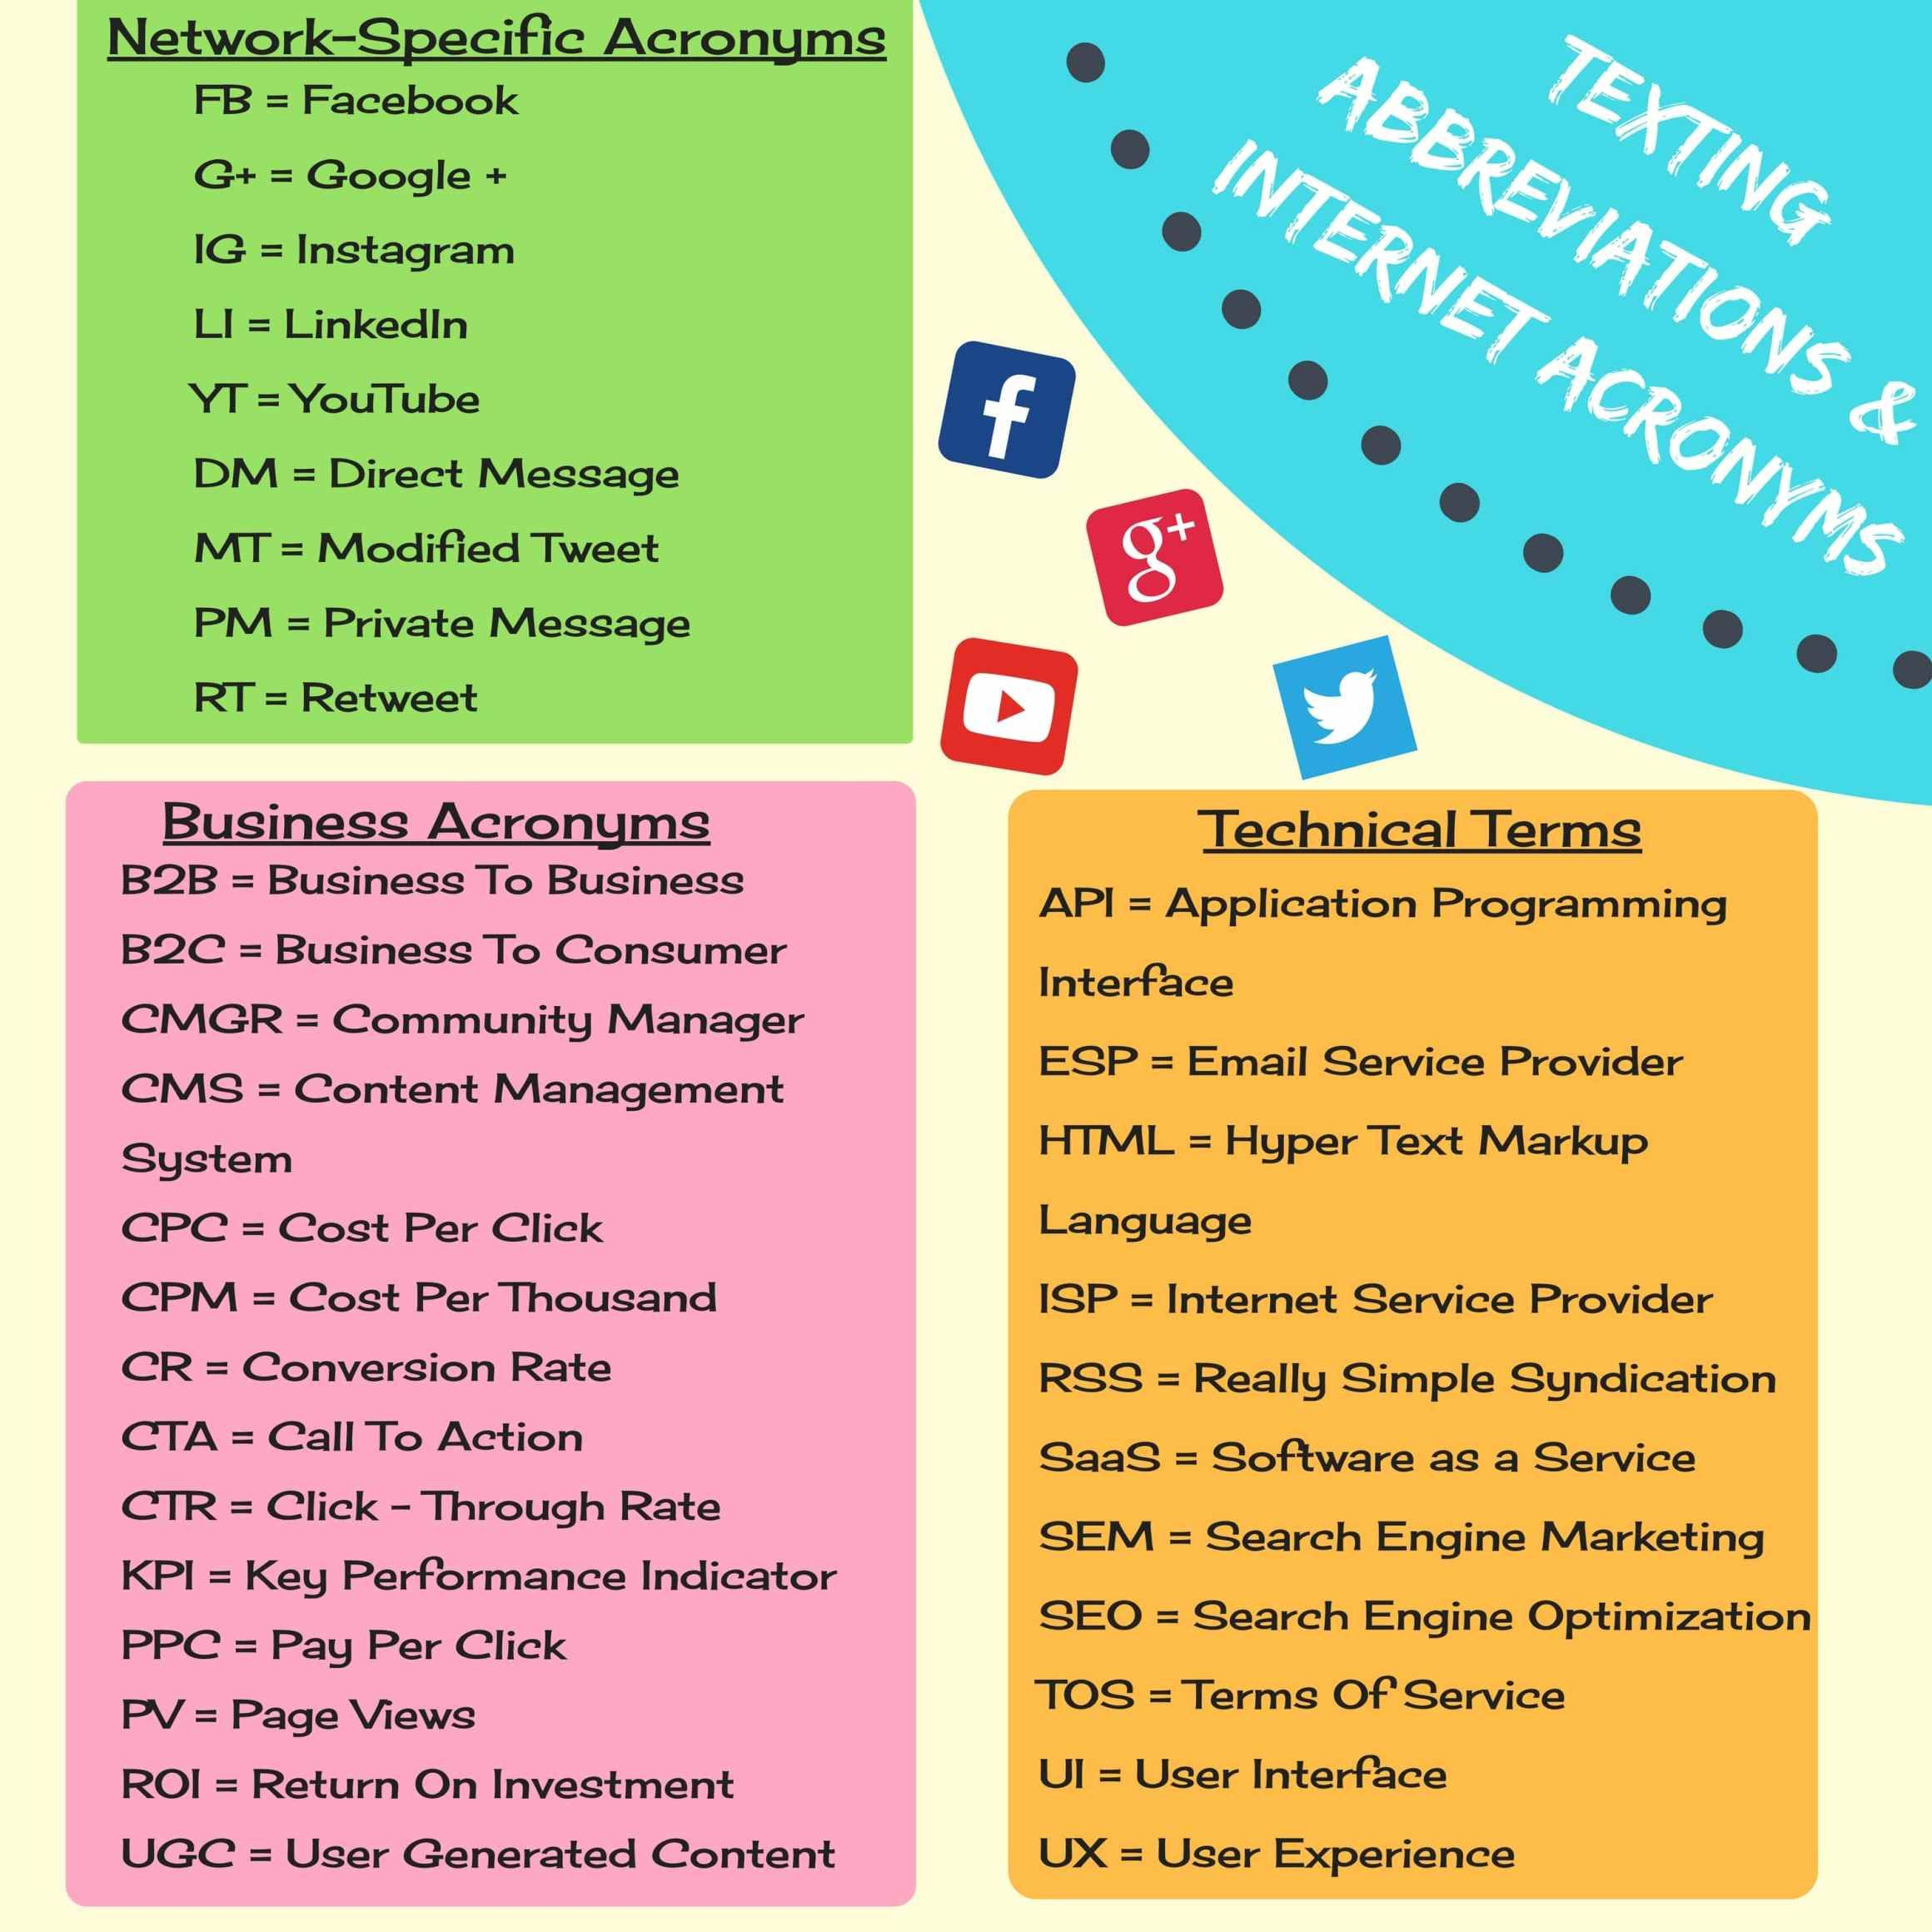 Commonly Used Texting Abbreviations and Acronyms